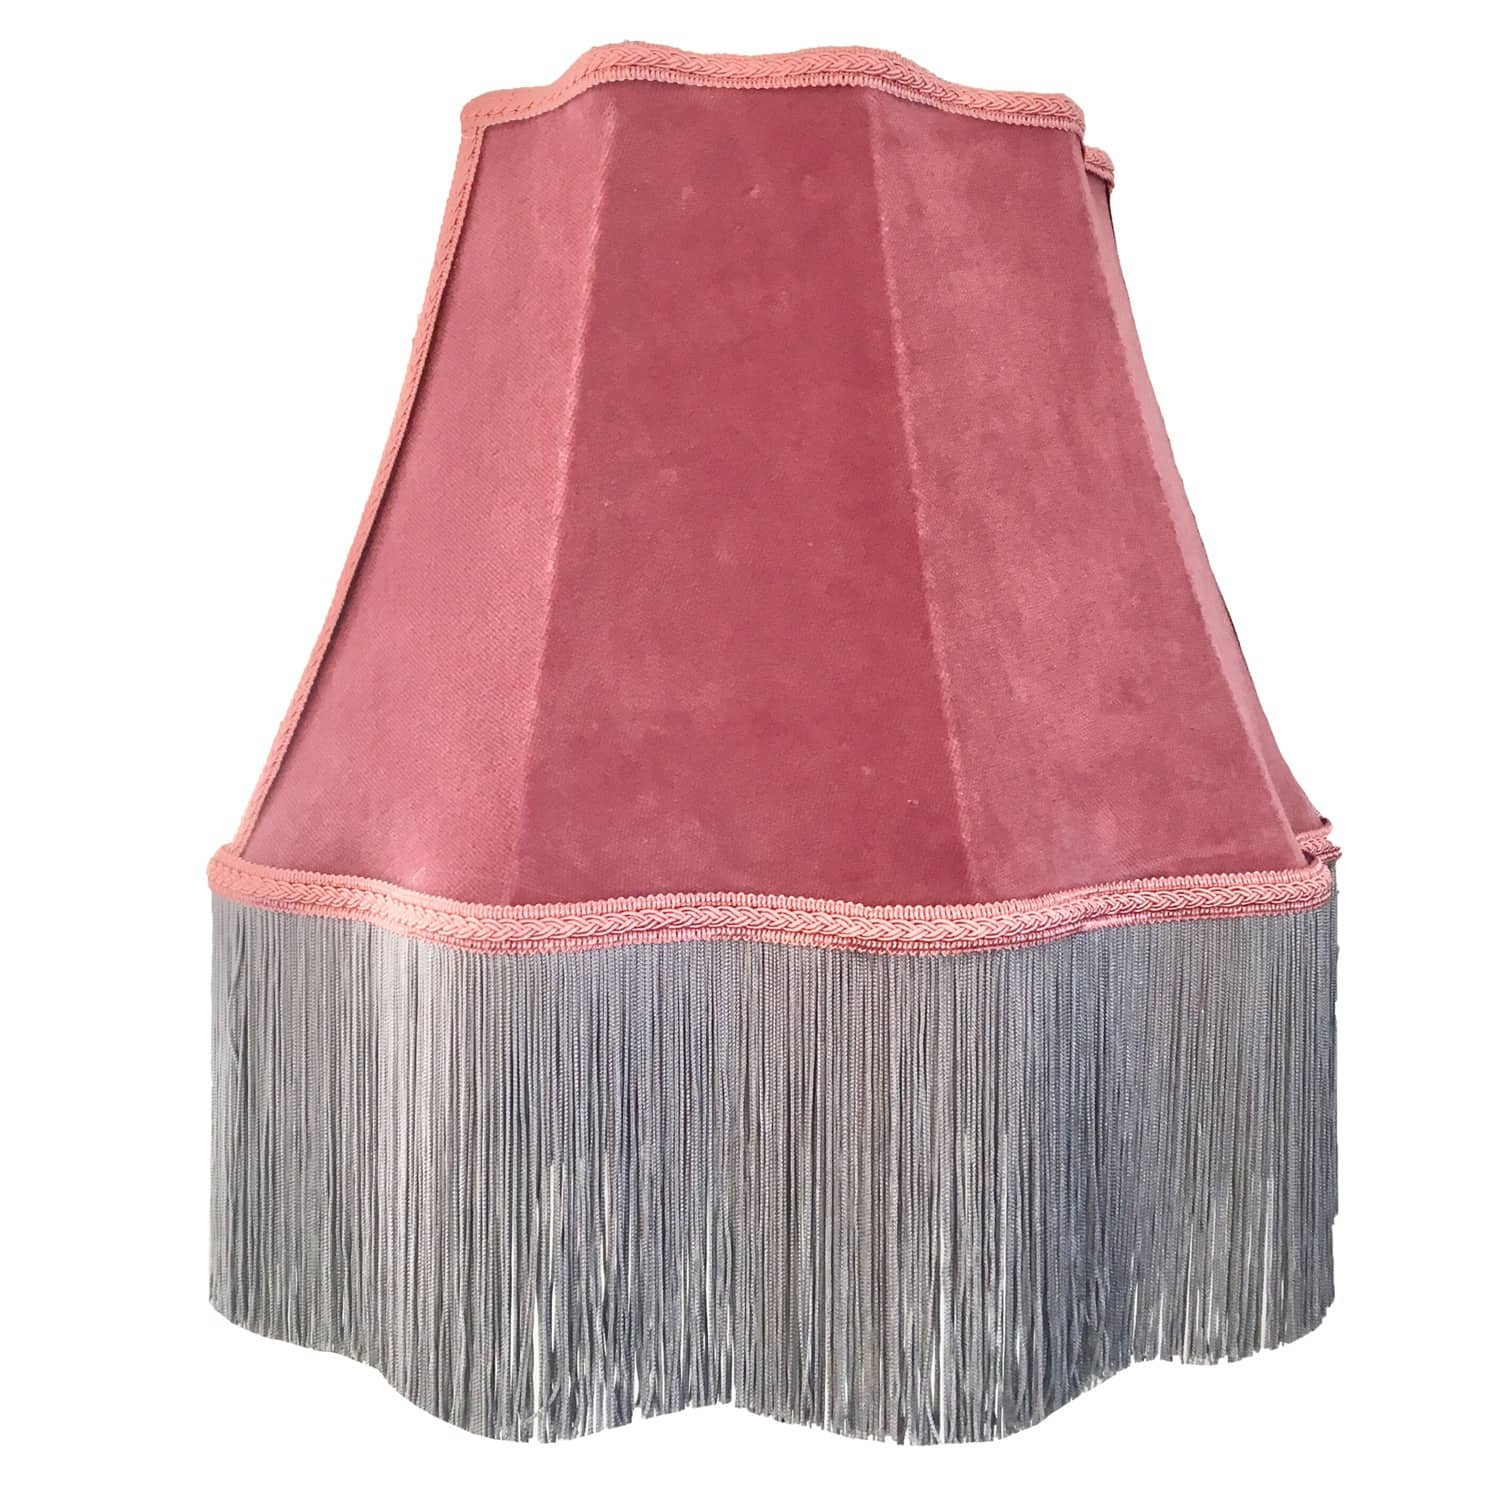 Pink Velvet Scalloped Lampshade With Grey Fringe Abigail